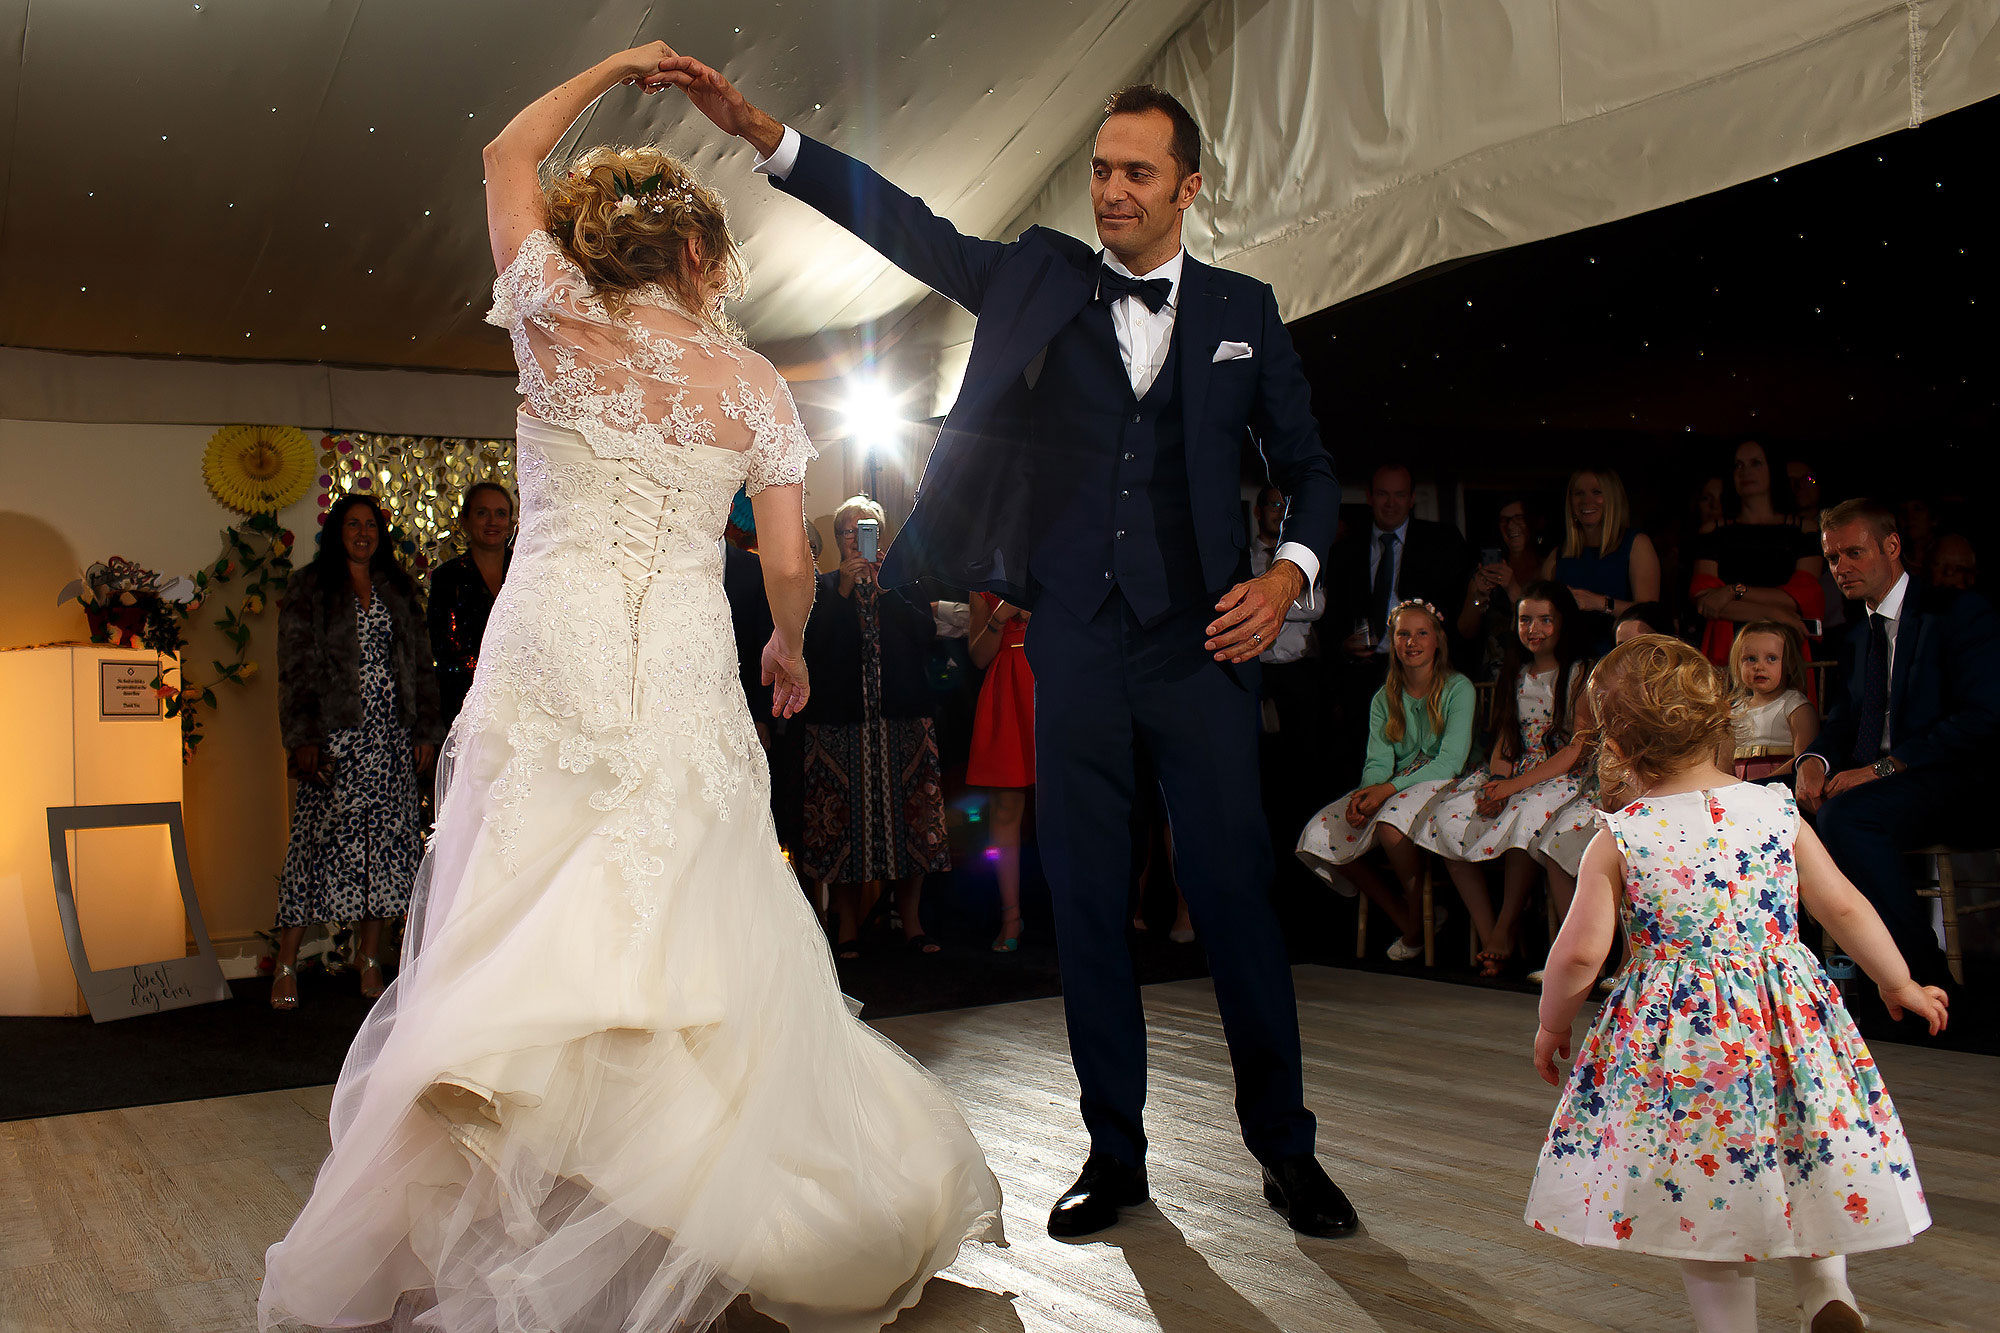 First dance in the Pavillion at Combermere Abbey Wedding